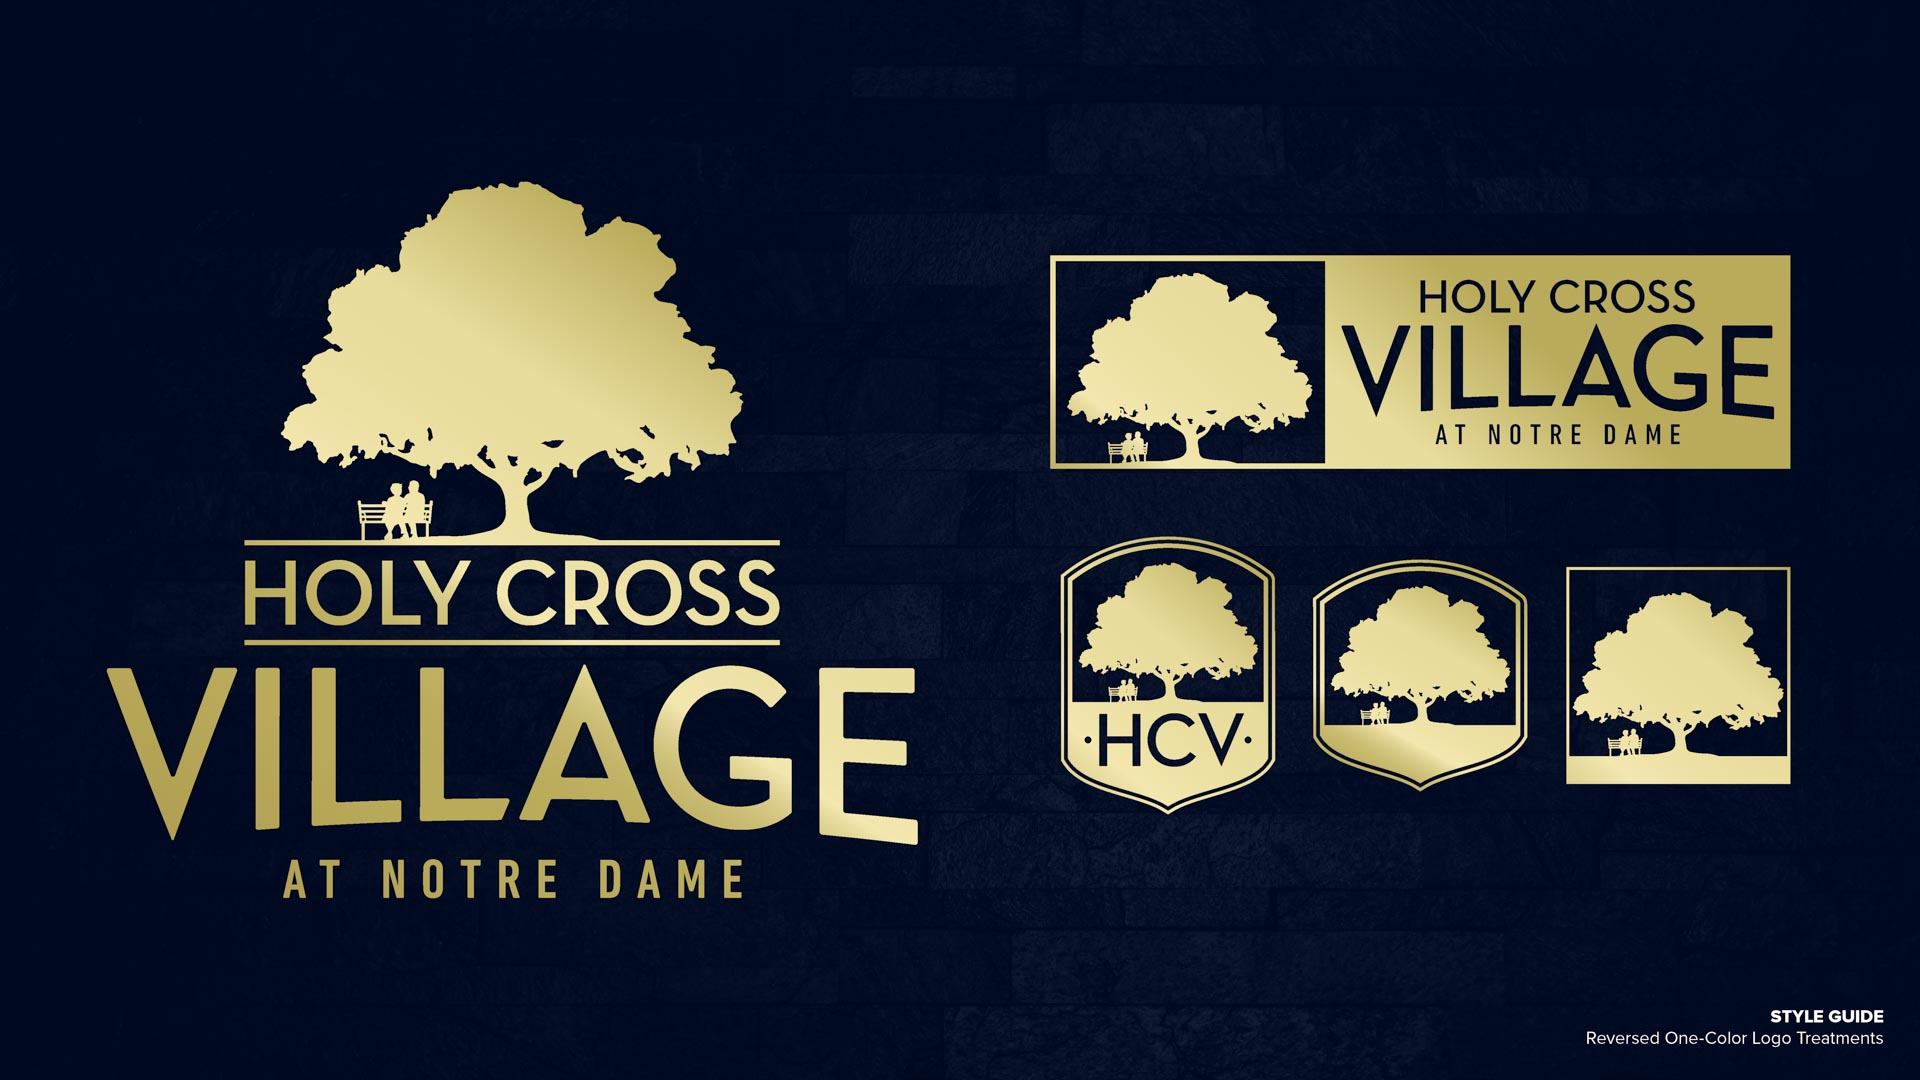 Holy Cross Village's Reversed One-Color Logo Treatments